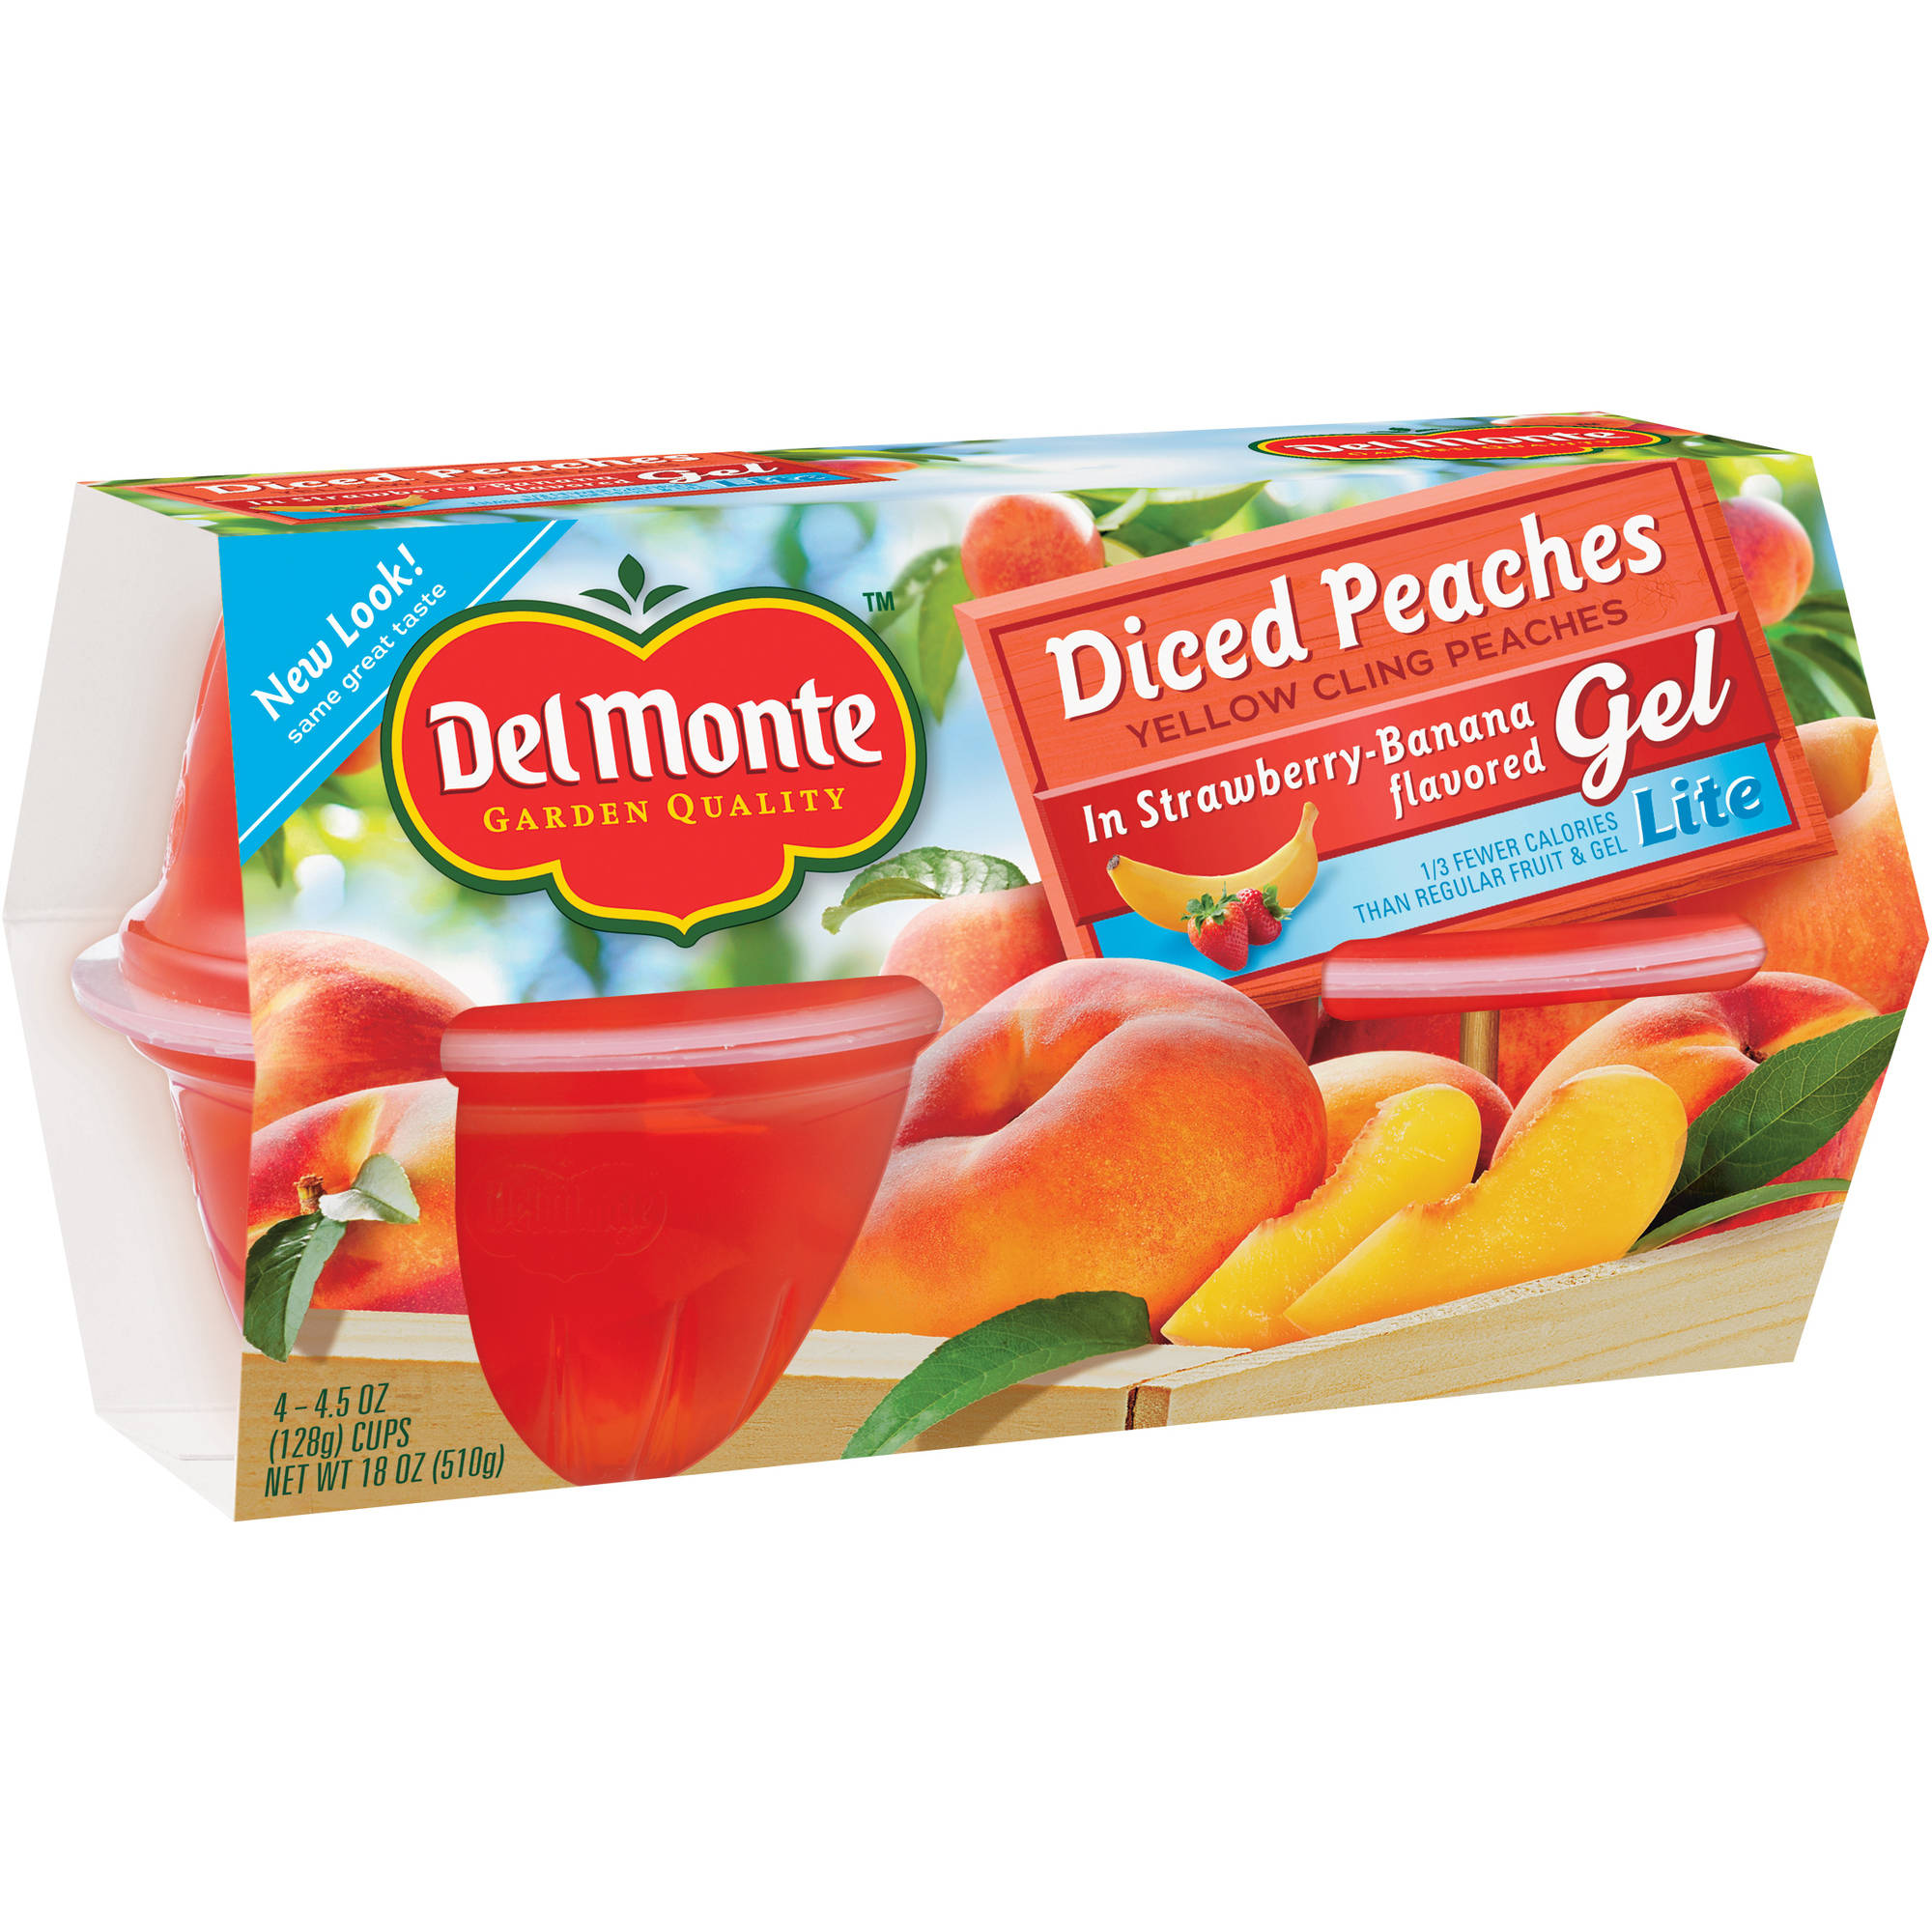 Del Monte Lite Diced Peaches in Strawberry-Banana Flavored Gel, 4.5 oz, 4 count